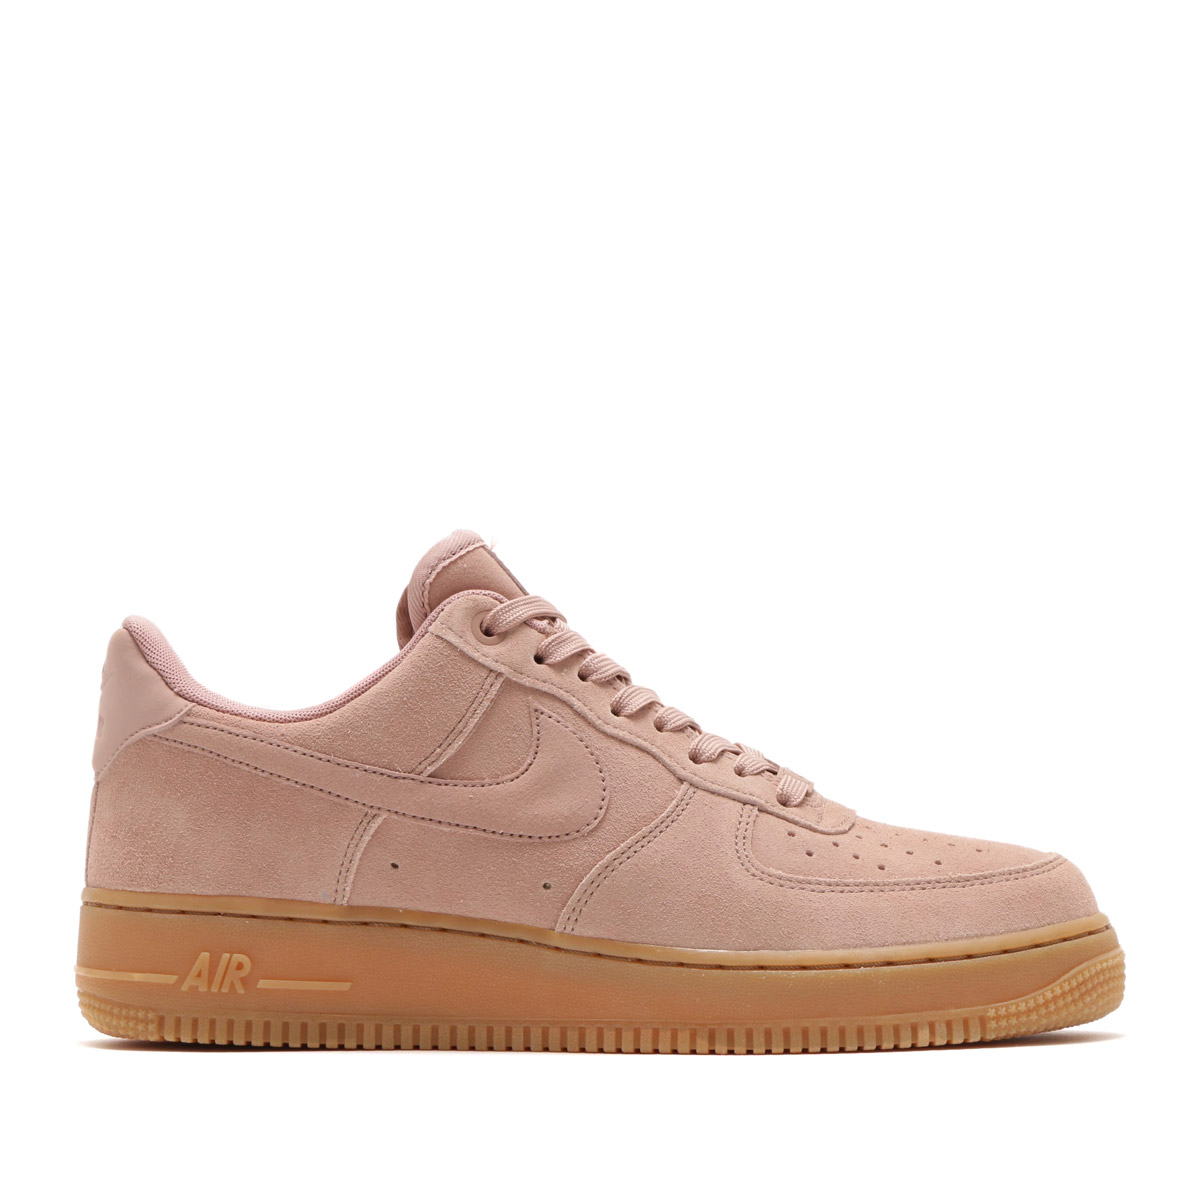 de197578fcf ... low price nike air force 1 07 lv8 suede nike air force 1 07 lv8 suede